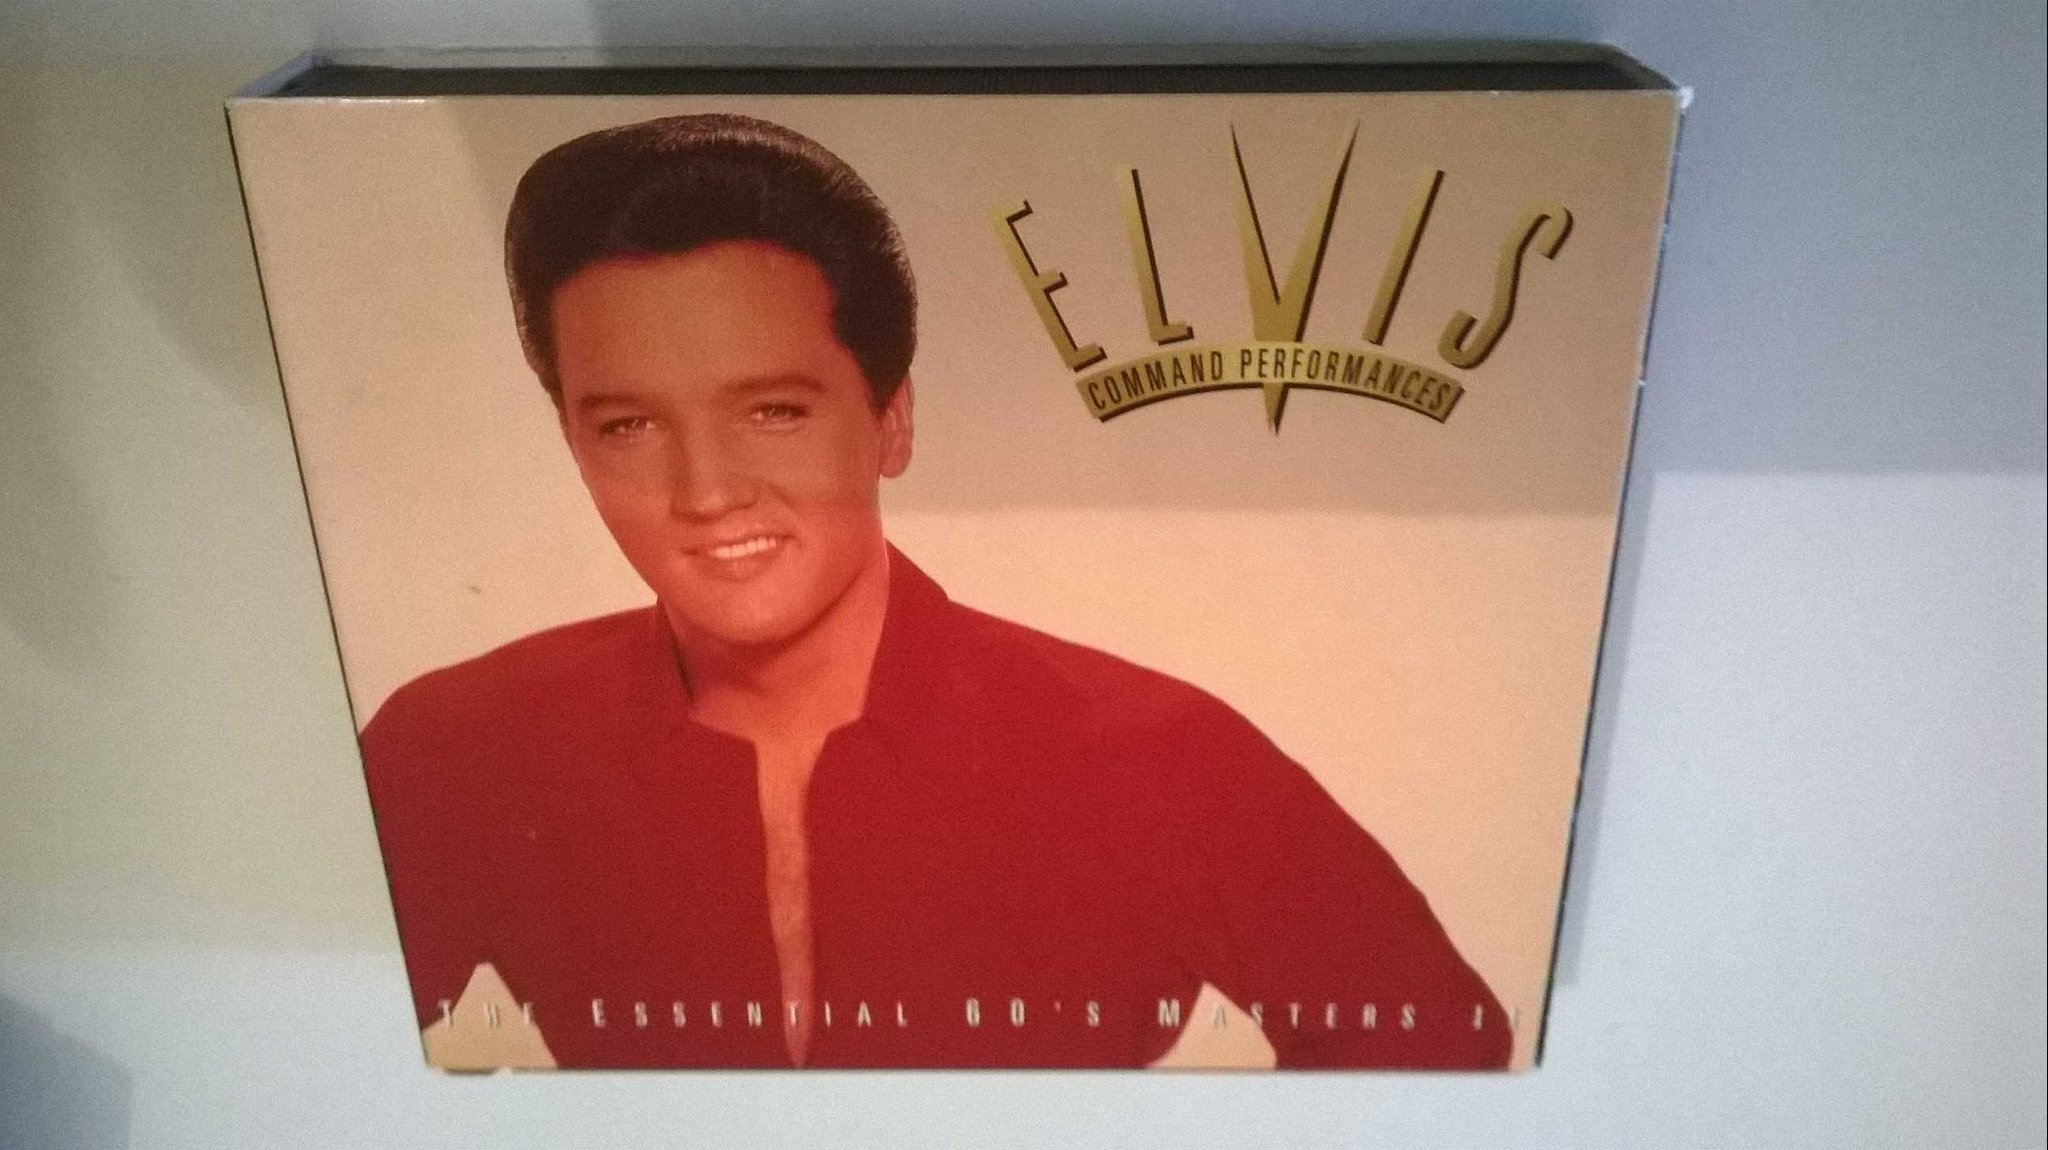 Elvis Presley - Command Performances The Essential 60's Mast